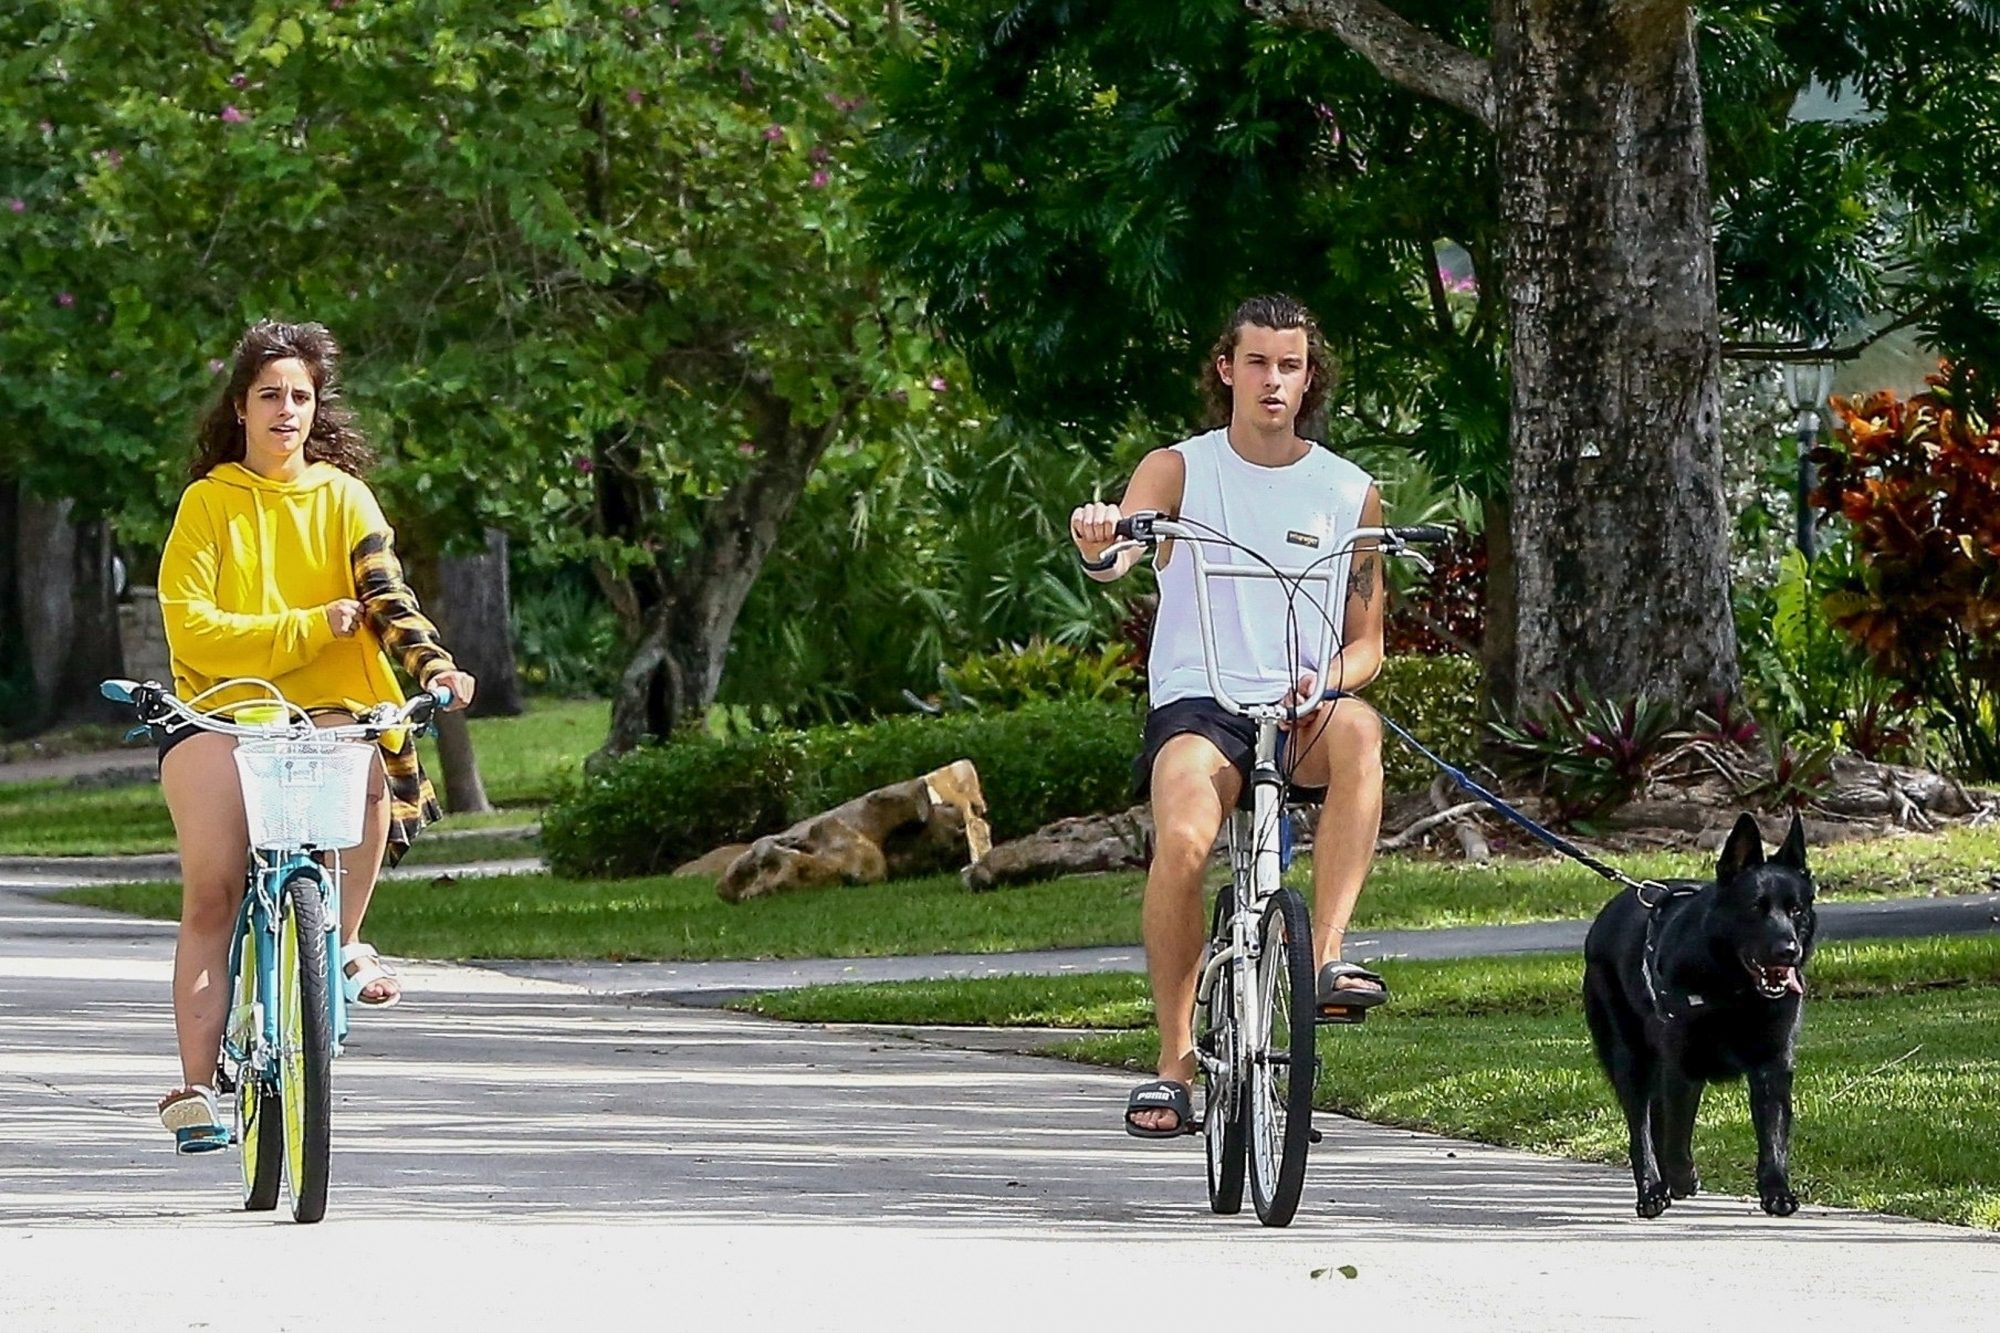 Camila Cabello Goes for a Bike Ride with Shawn Mendes and Dog in Miami